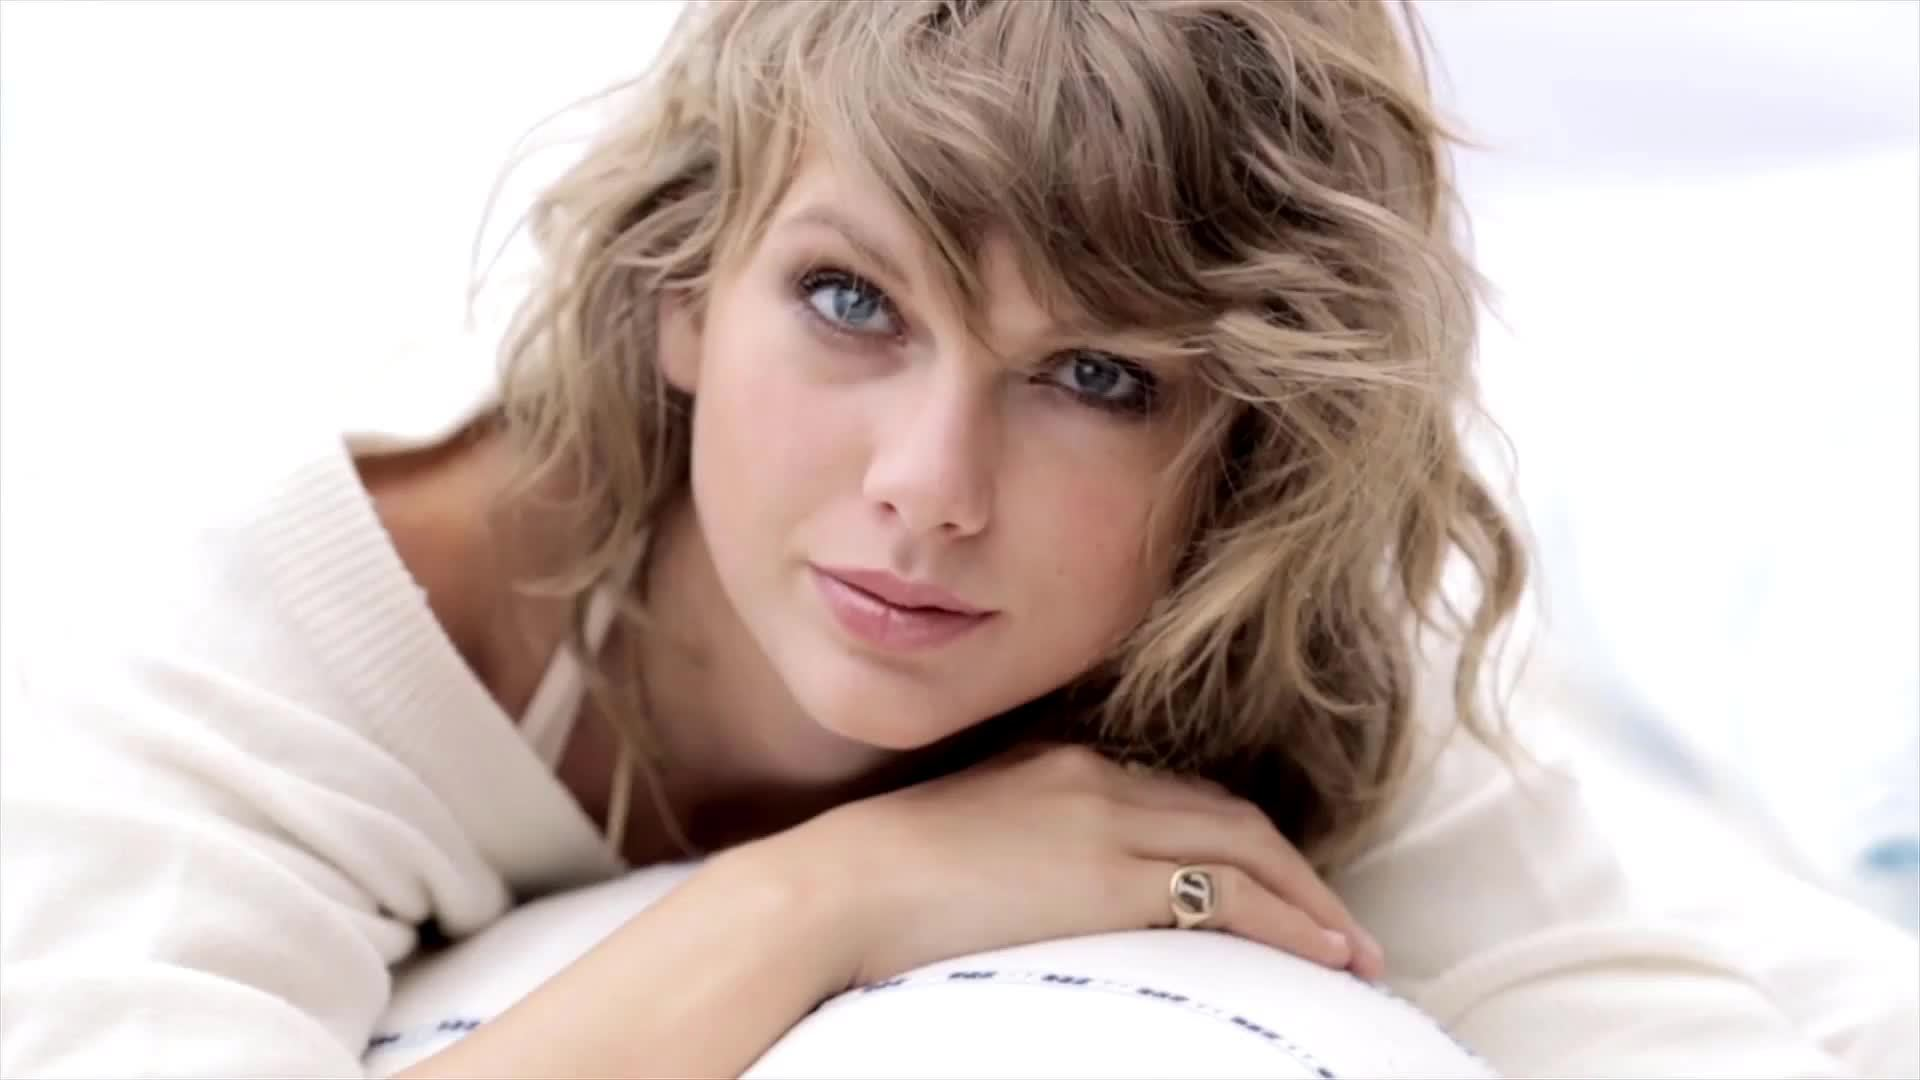 Taylor Swift, TaylorSwiftPictures, taylorswiftpictures,  GIFs